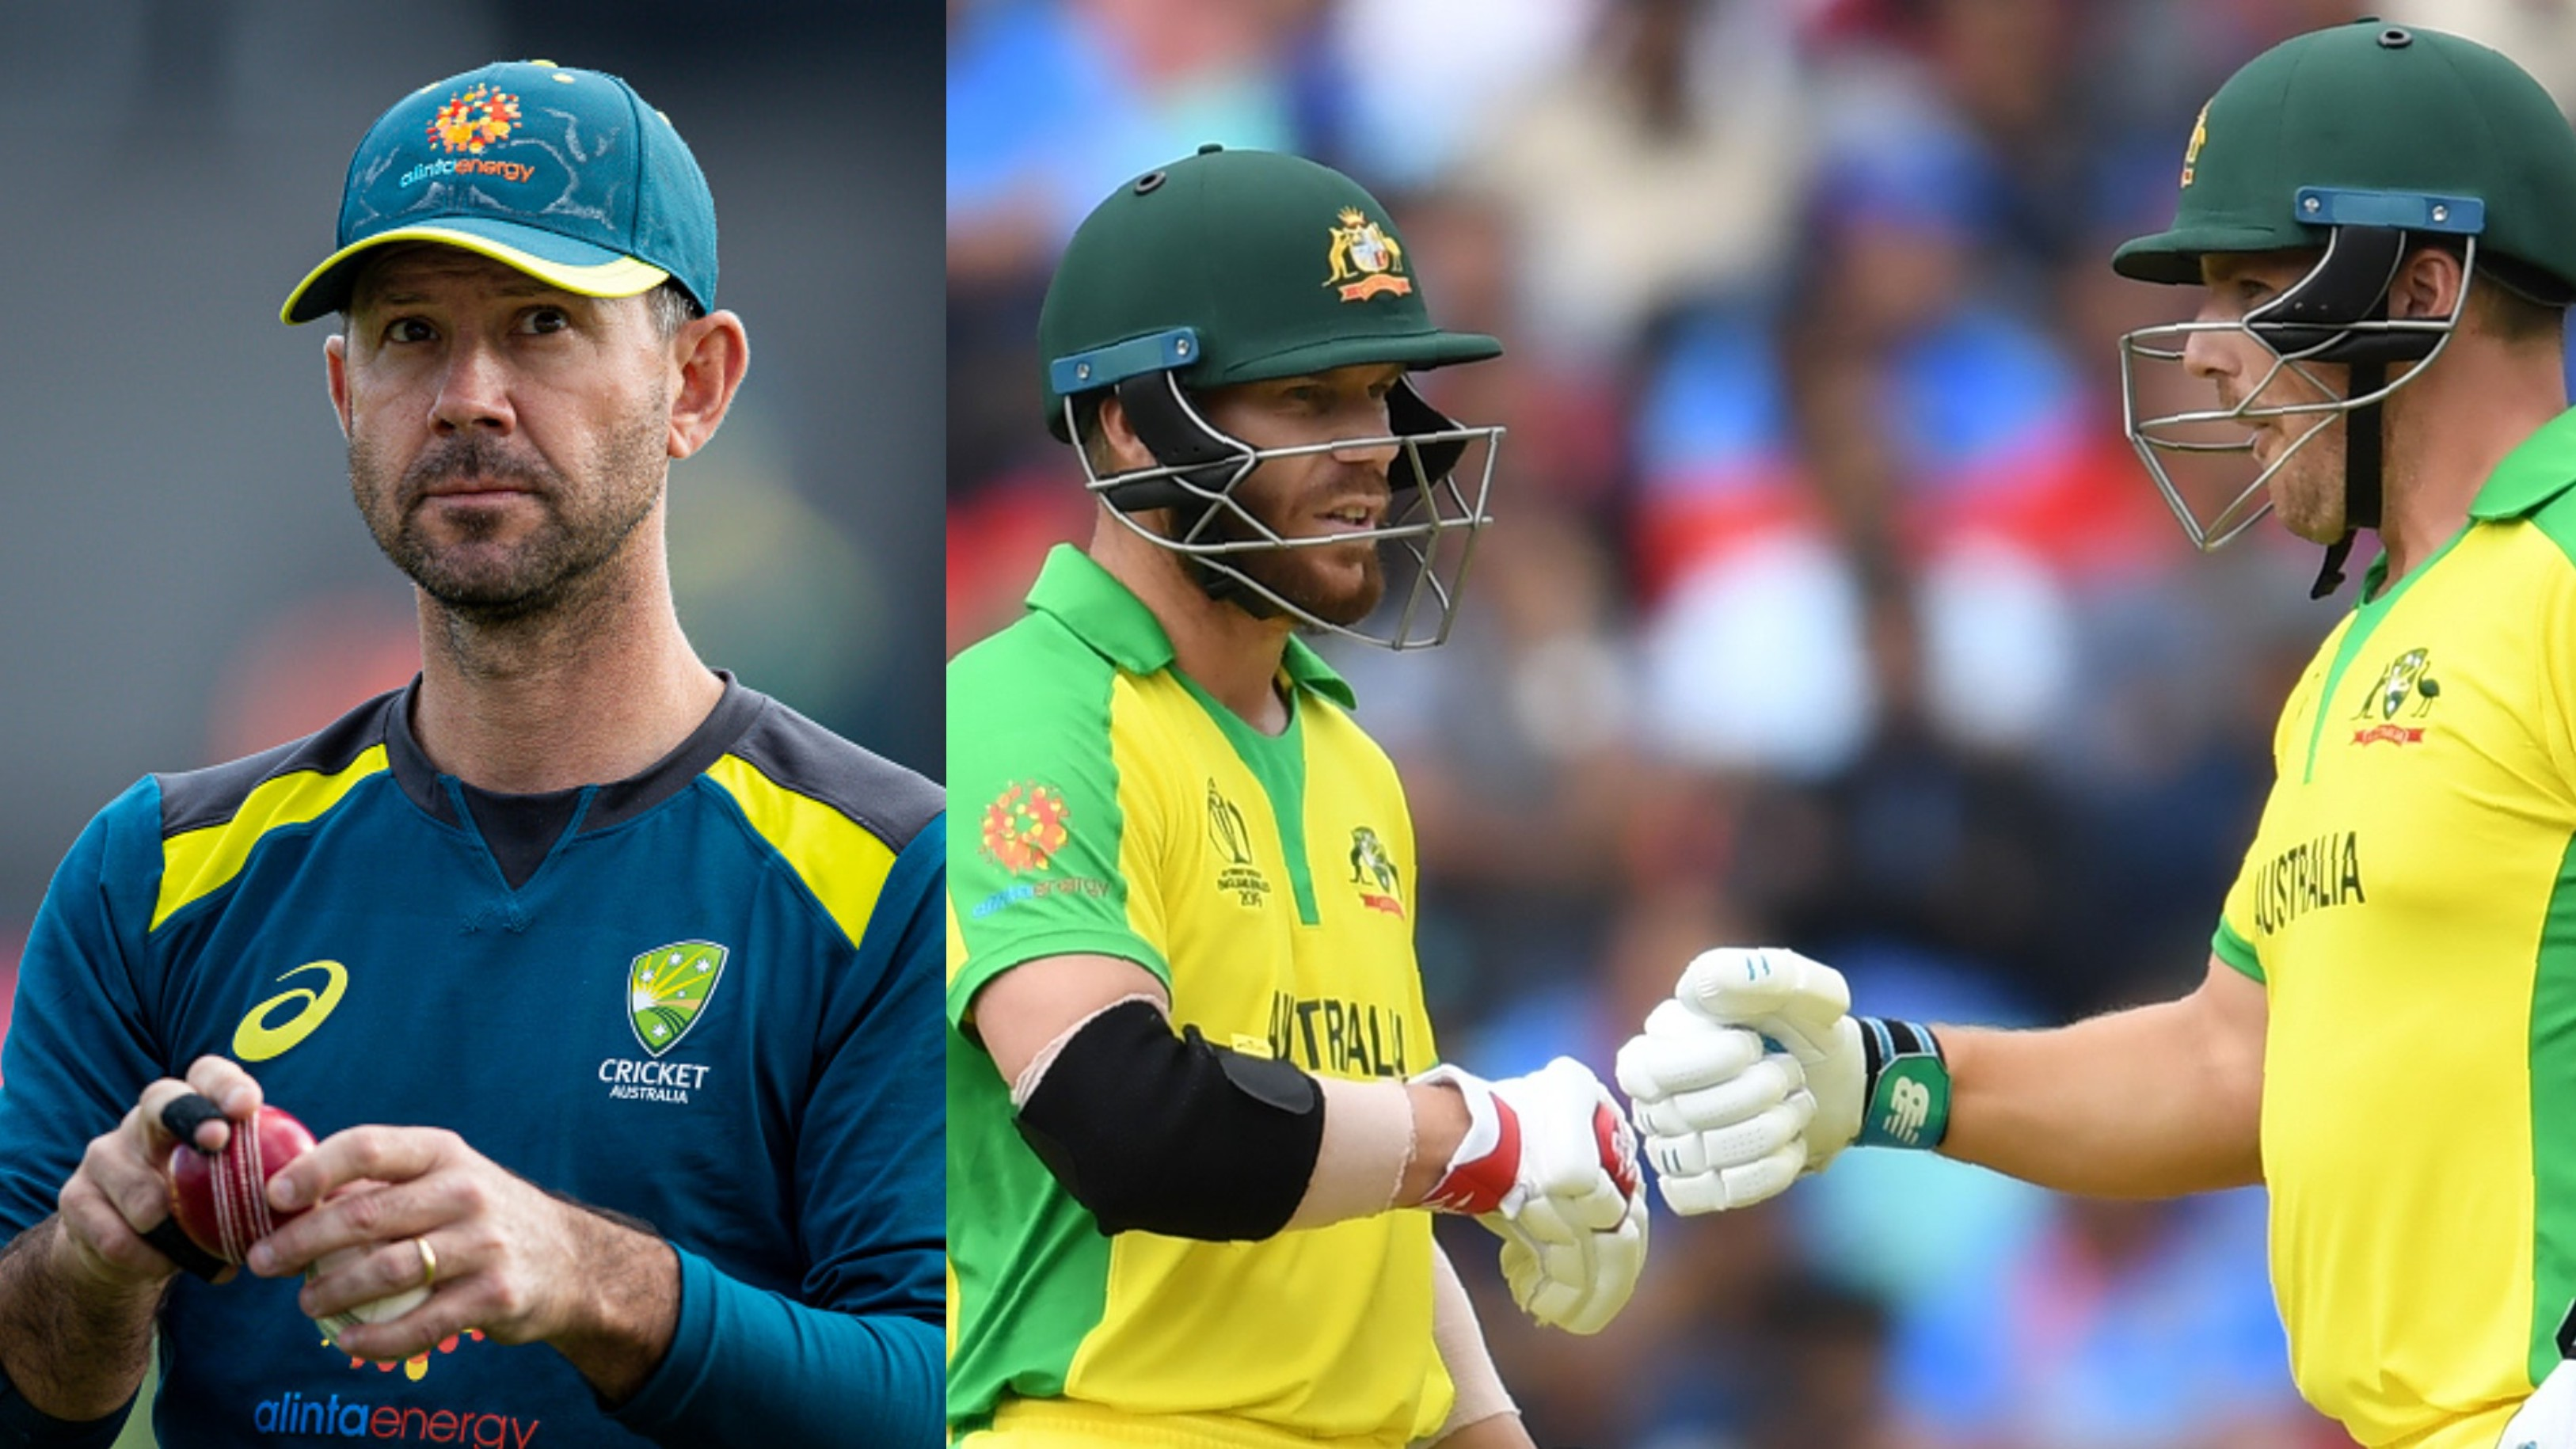 CWC 2019: Finch and Warner are probably as good as any openers in the world, says Ponting